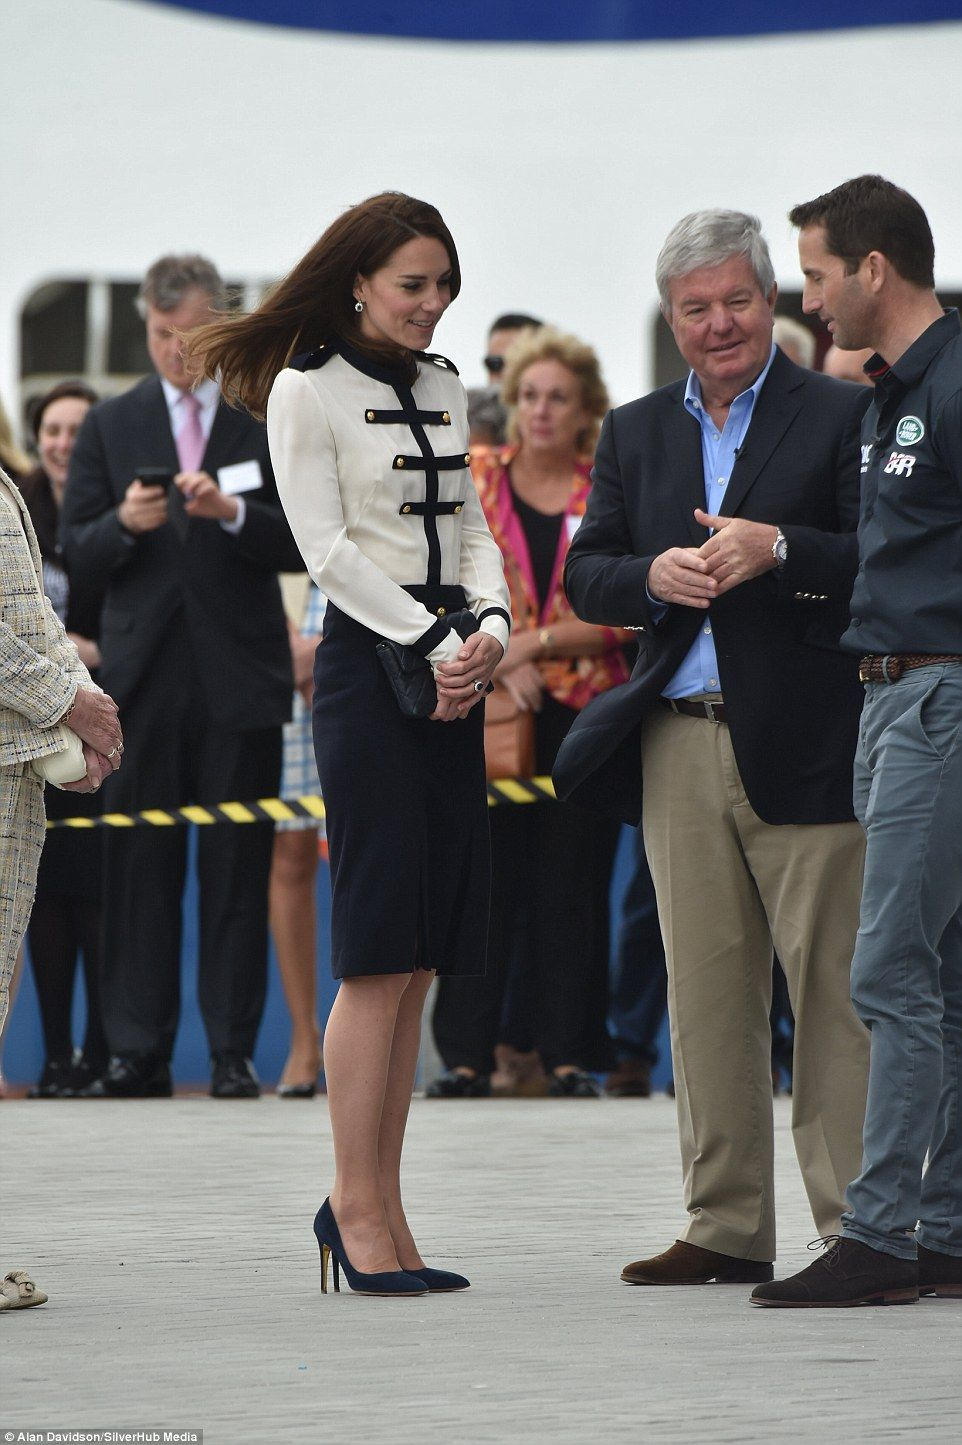 Kate, 34, sported a nautical style Alexander McQueen two piece as she arrived looking slig...